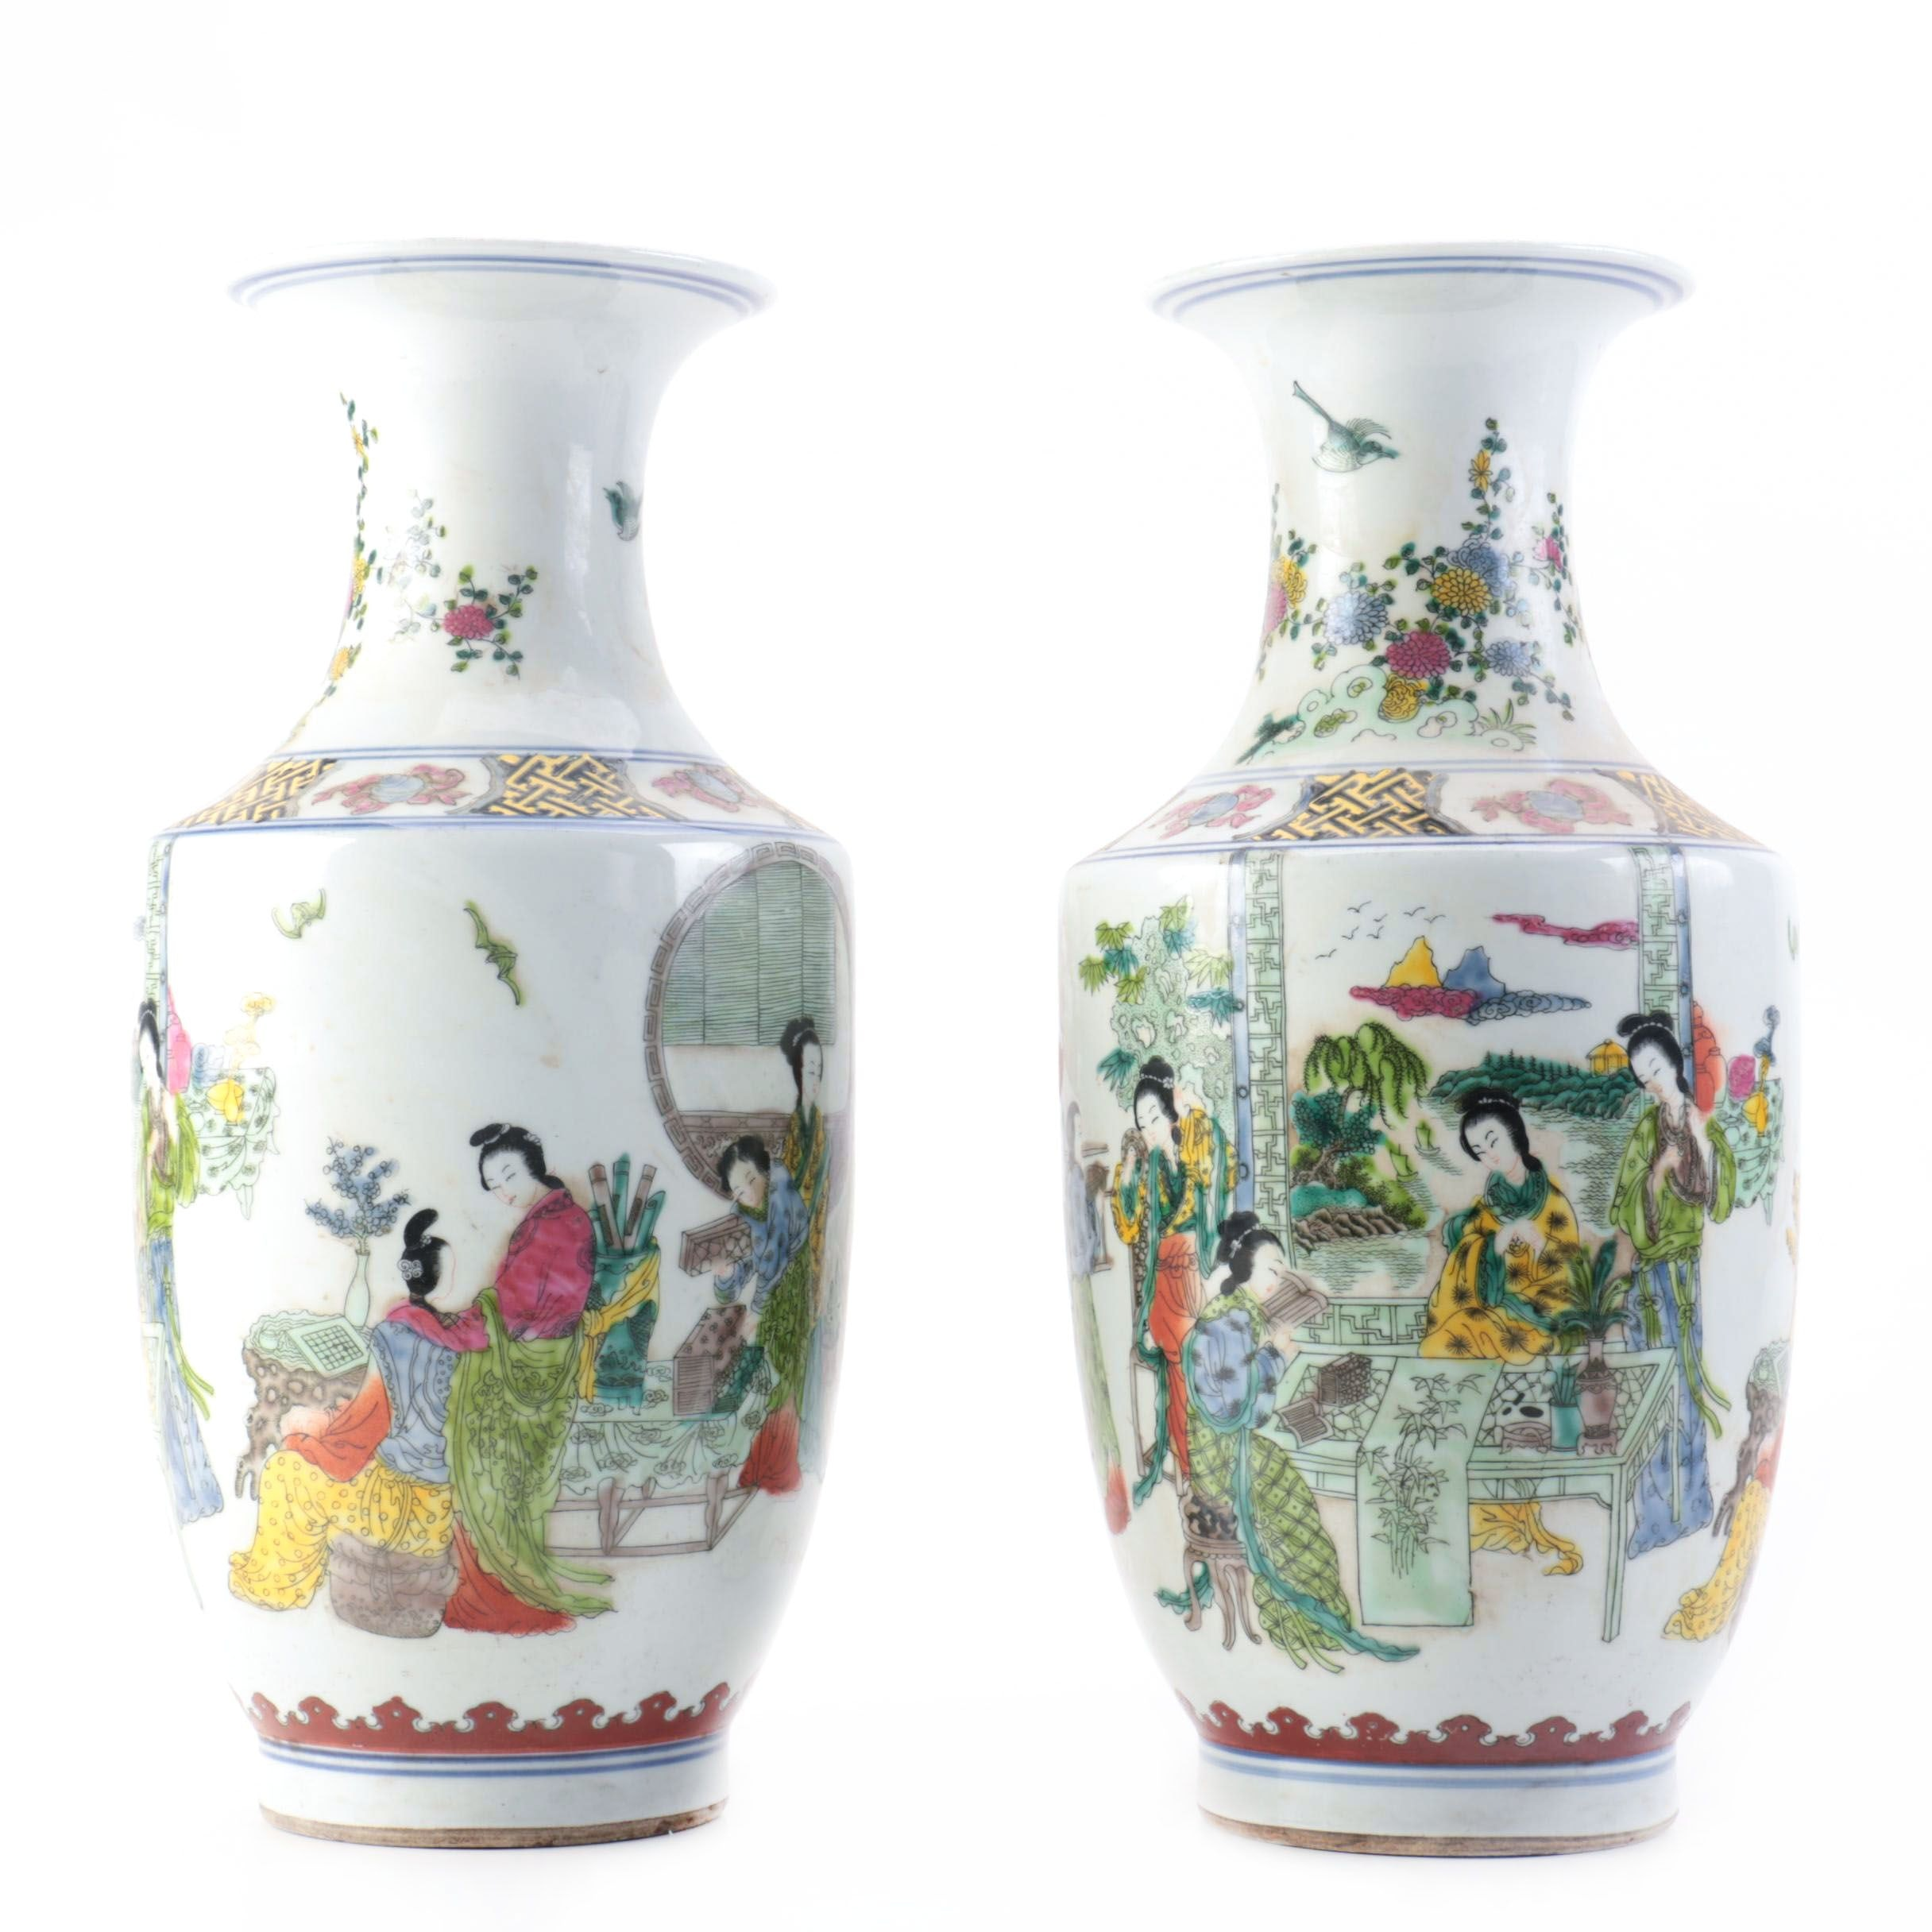 Pair of Porcelain Rouleau Chinese Vases